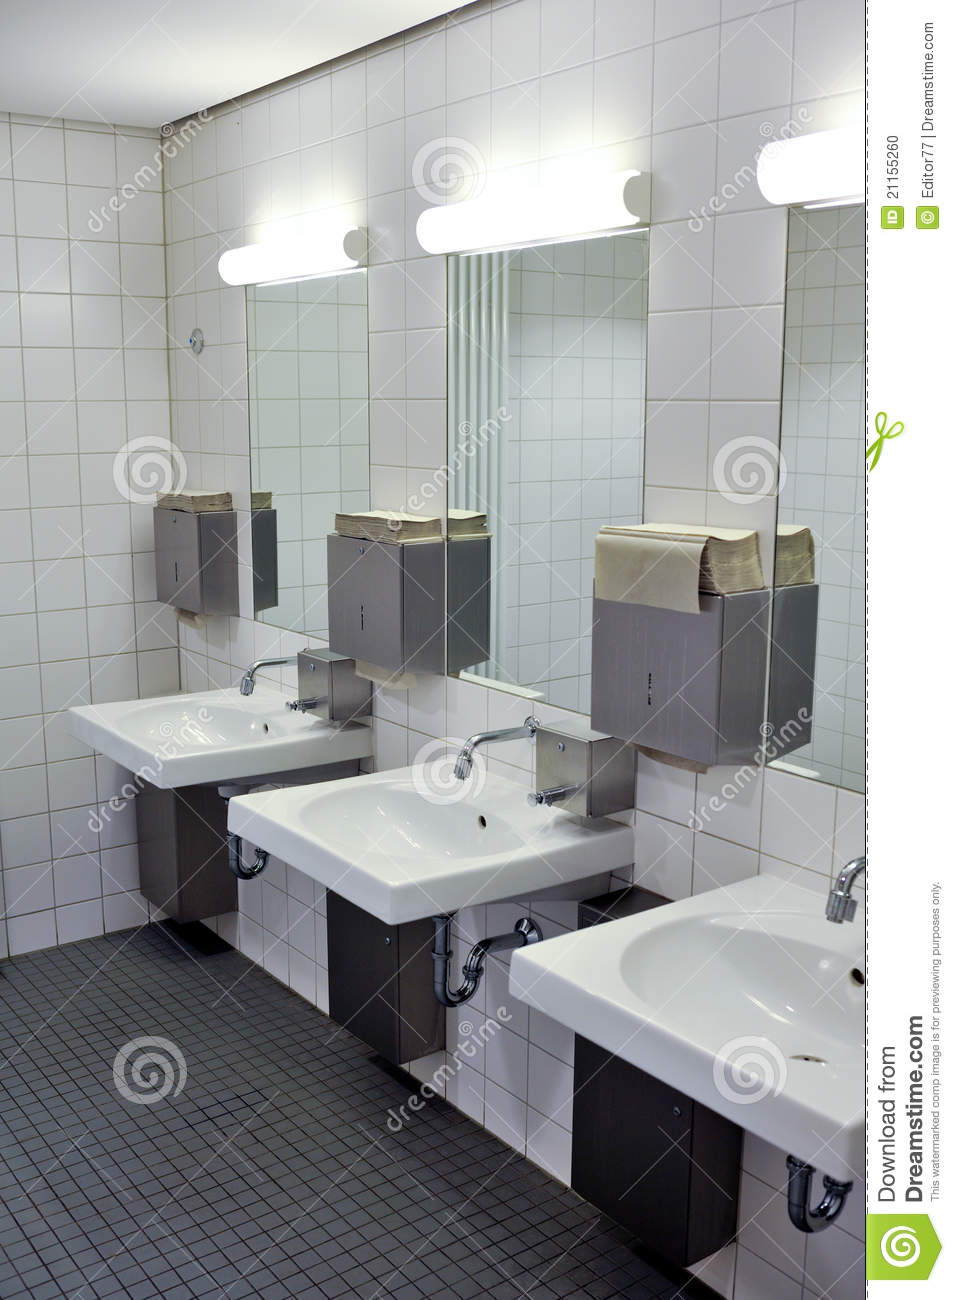 Royalty Free Stock Photo  Download Public Bathroom. Public Bathroom Interior Stock Photo   Image  21155260